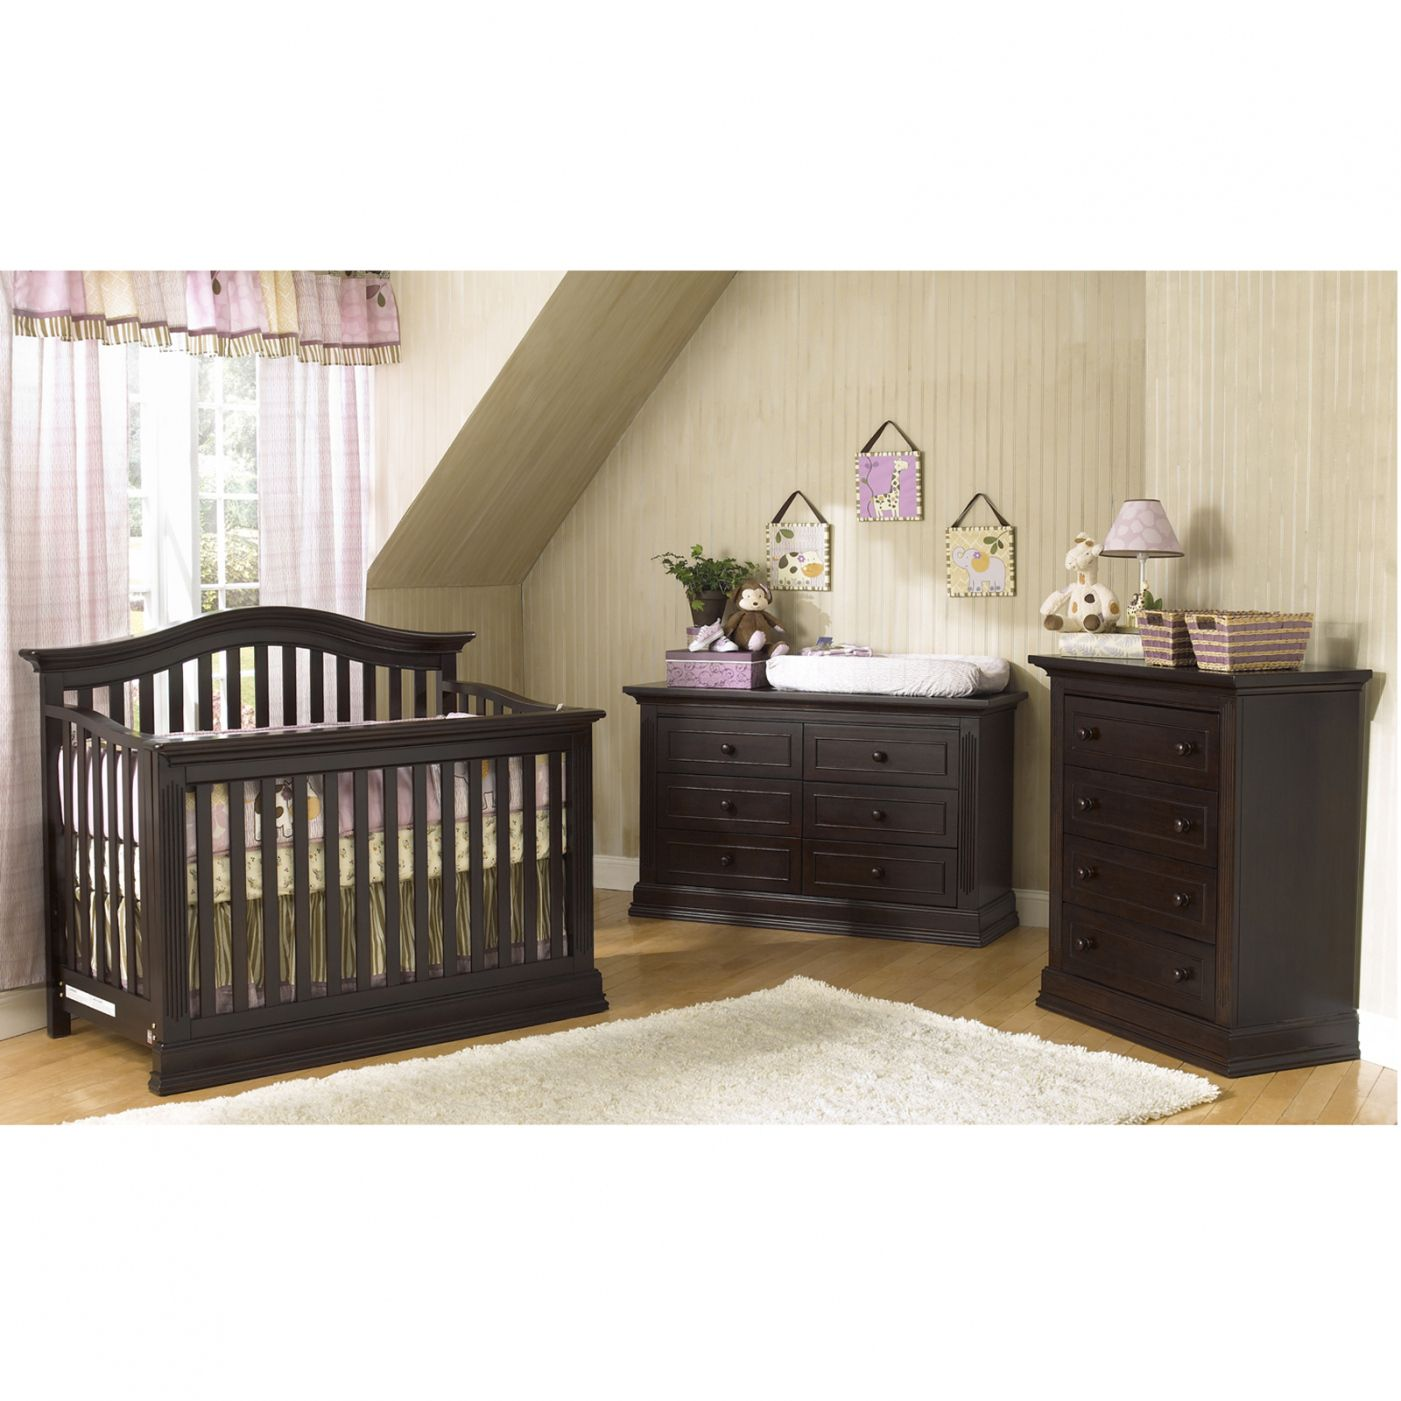 30 Burlington Baby Furniture Master Bedroom Interior Design Ideas Check More At Http Www Chulaniphotography Pinterest